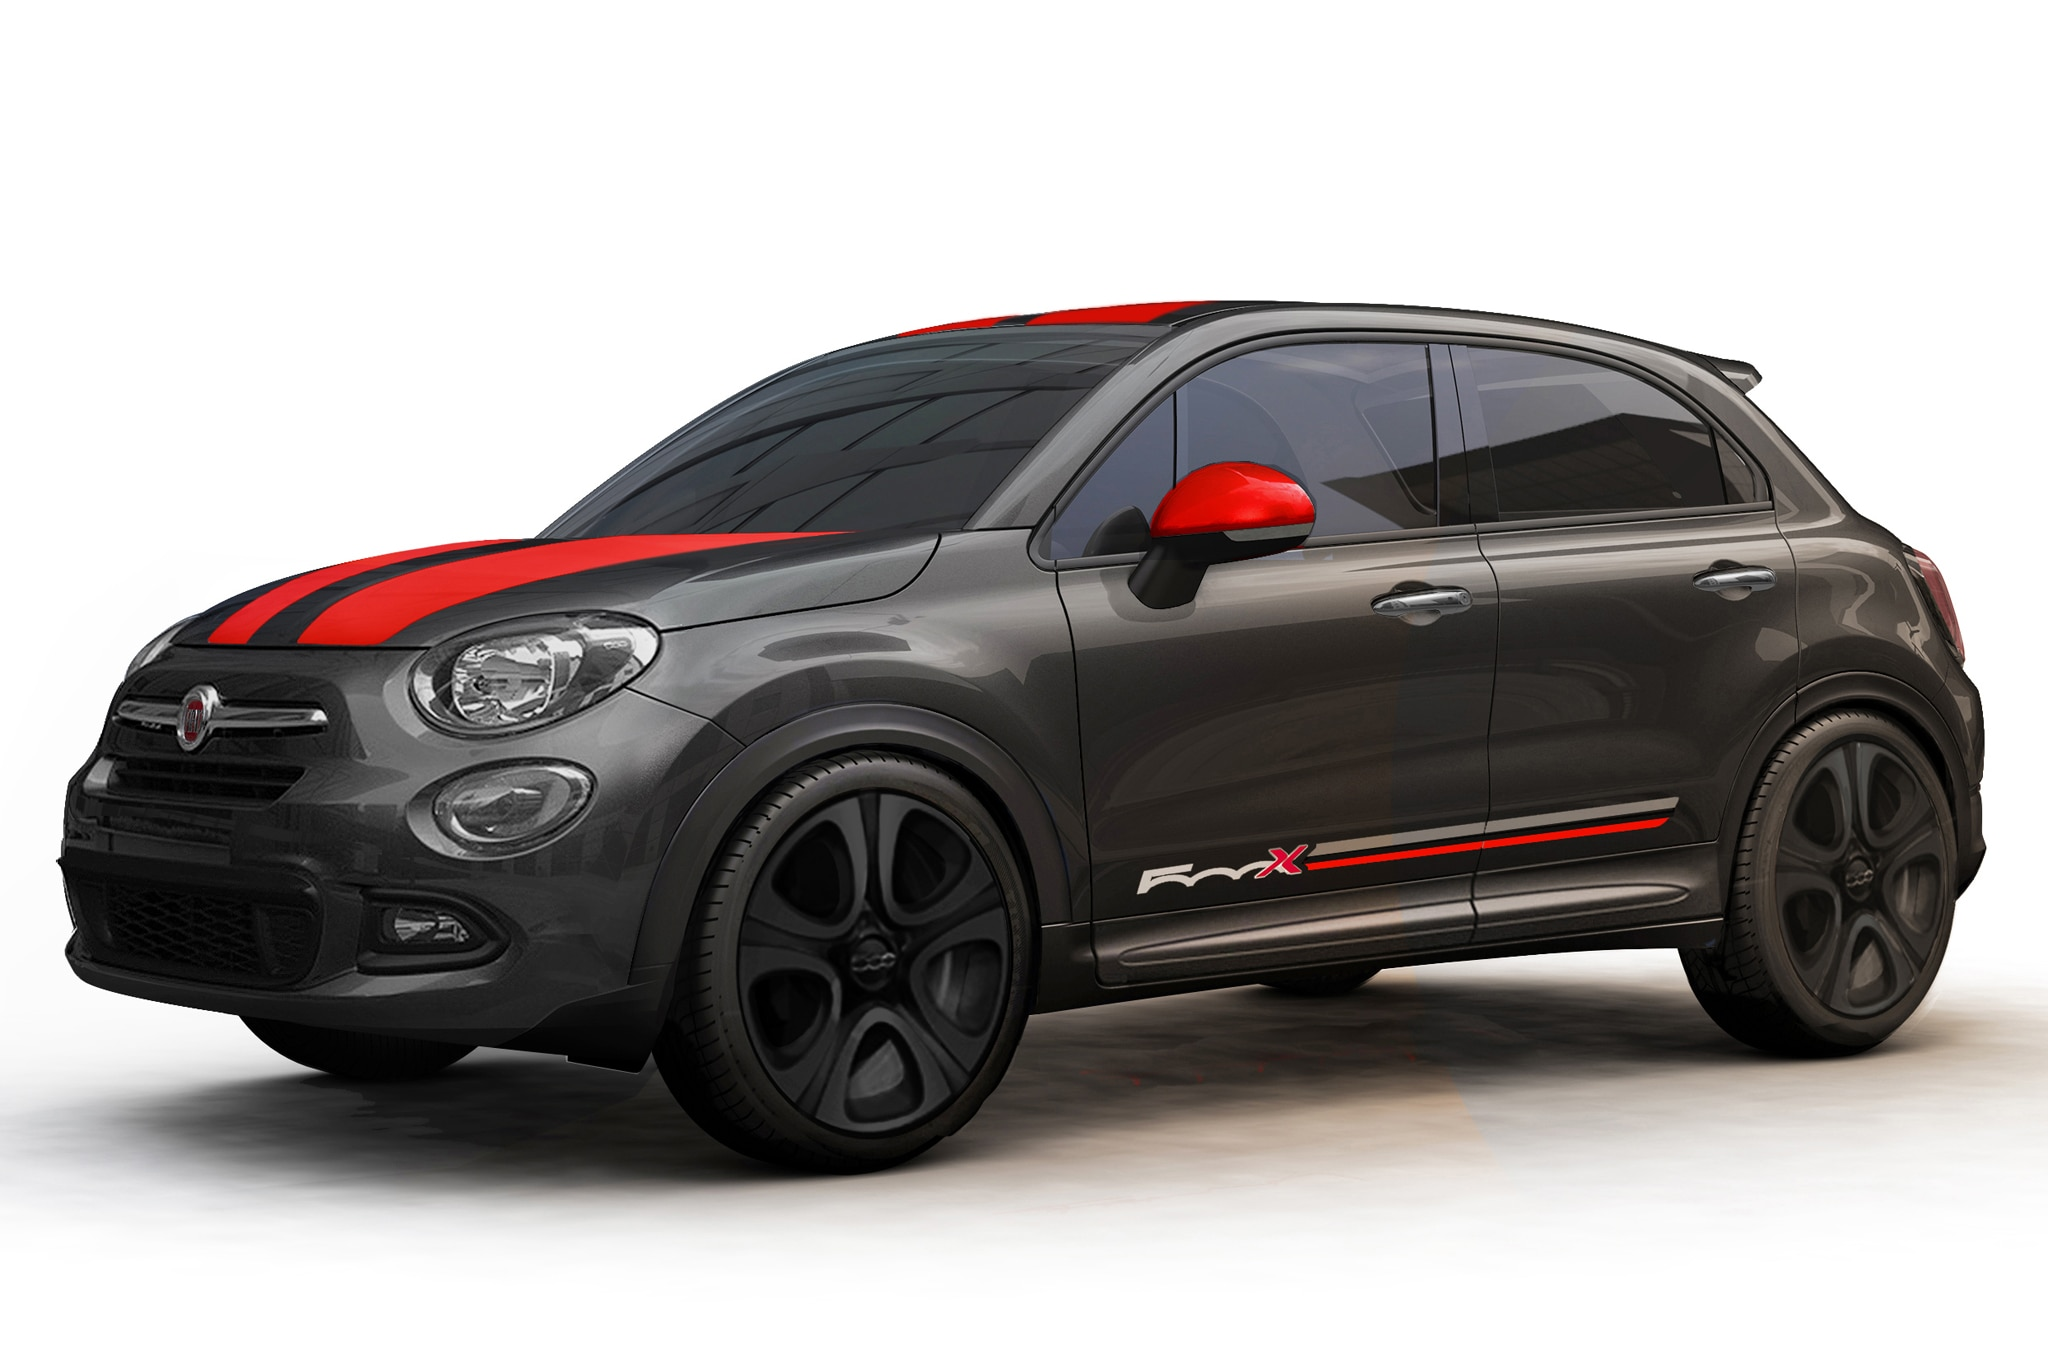 mopar ize the 2016 fiat 500x with special accessories. Black Bedroom Furniture Sets. Home Design Ideas